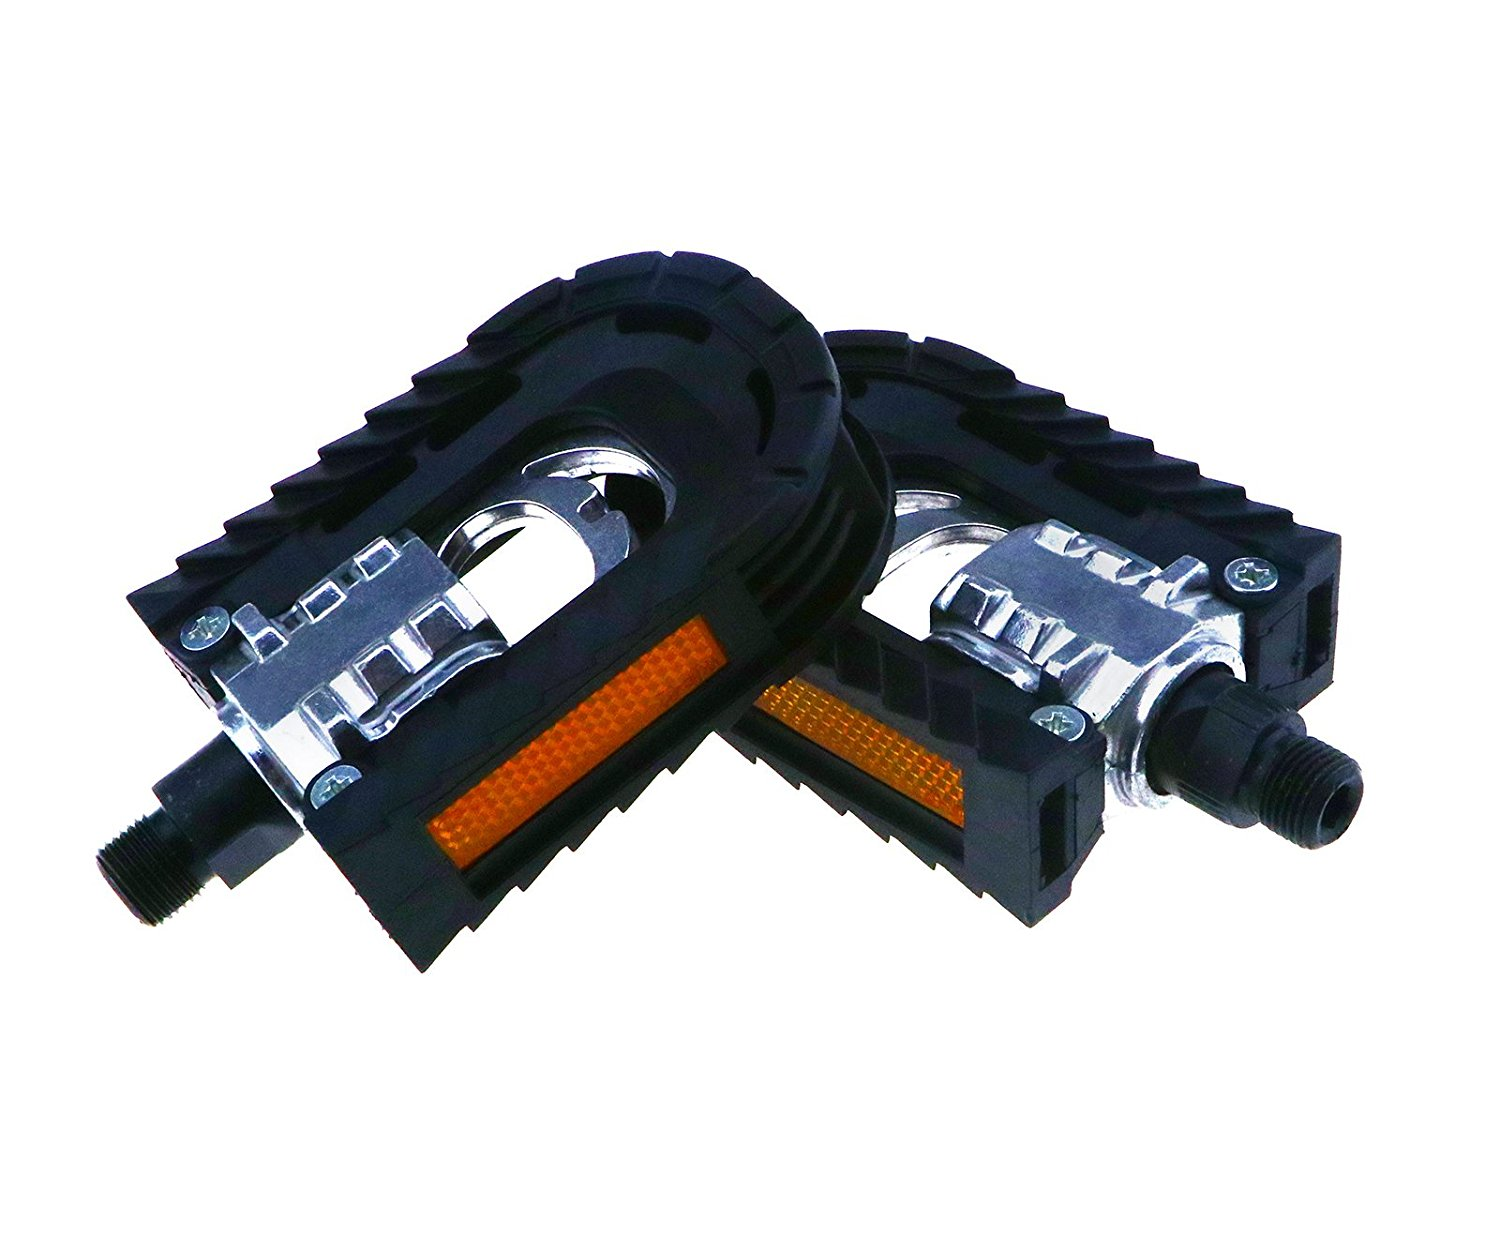 2x Aluminum Alloy Mountain Bike Bicycle Folding Left Right Side Pedals Non-slip